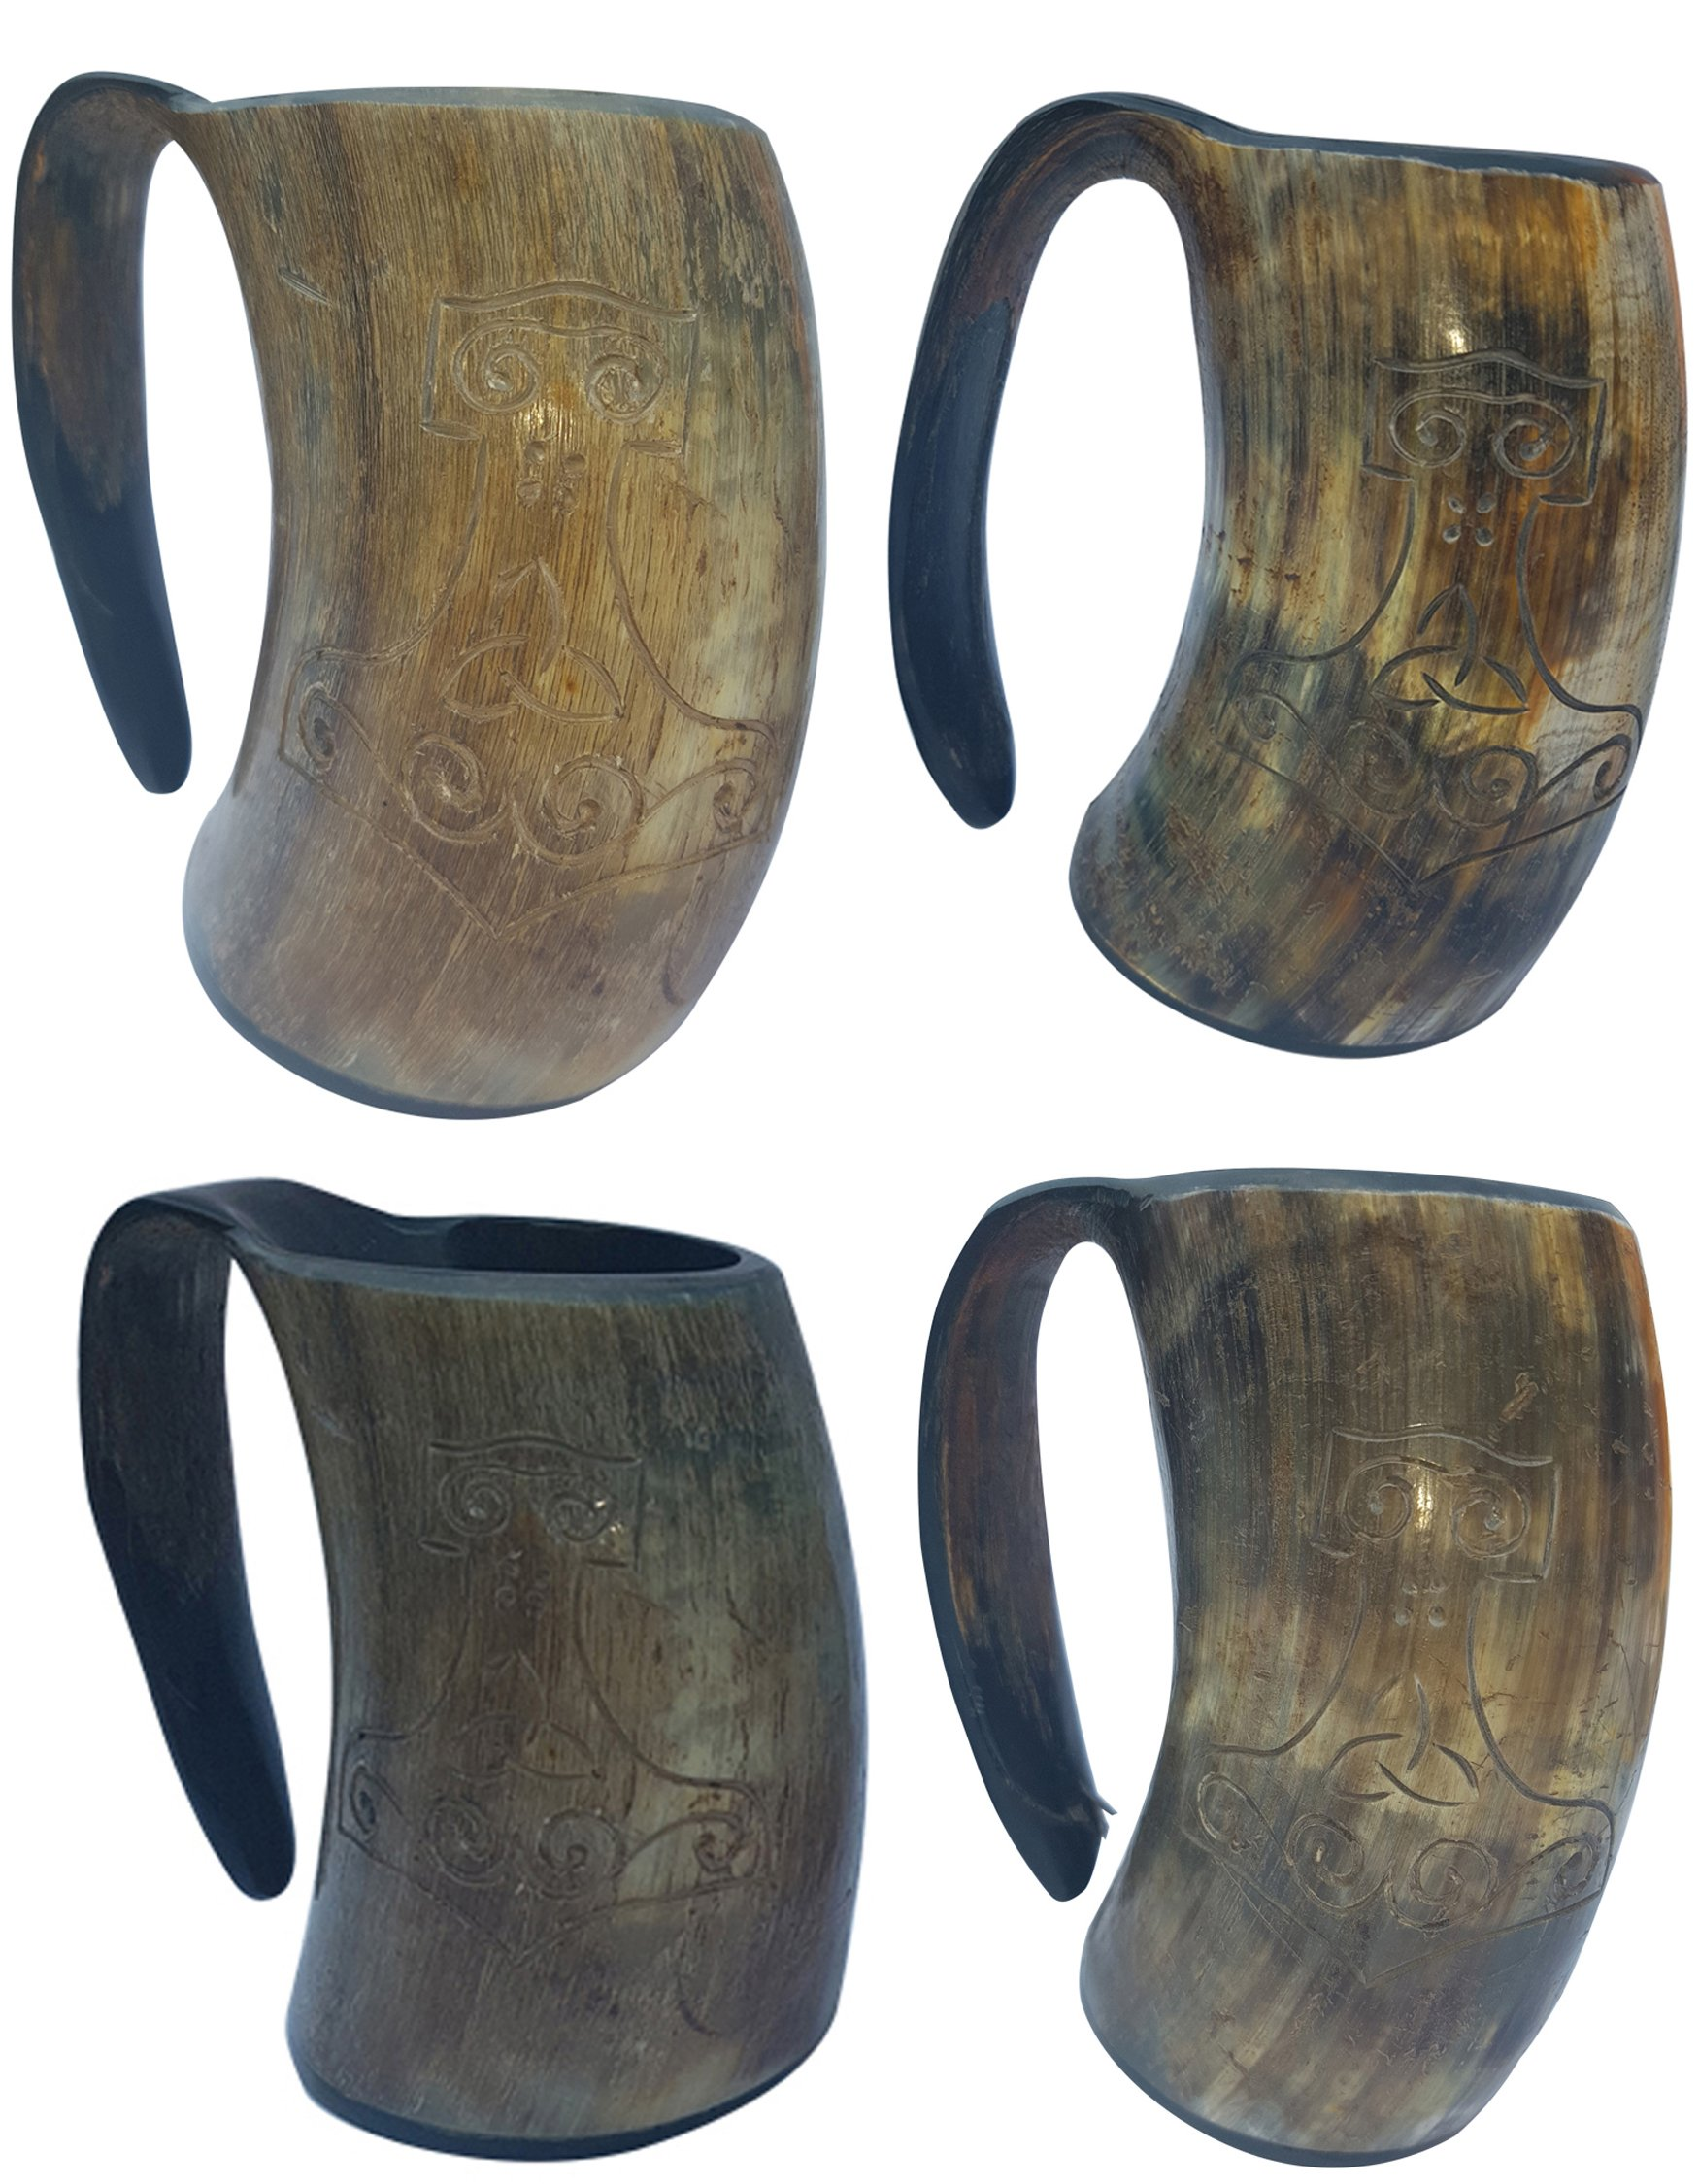 Most Popular In U.S. & Europe THOR'S Hand Engraved Pair of Handcrafted XL Handmade 6'' Tall Game of Thrones'' style Drinking Viking Horn 16 oz For Beer Wine and Cold Drink